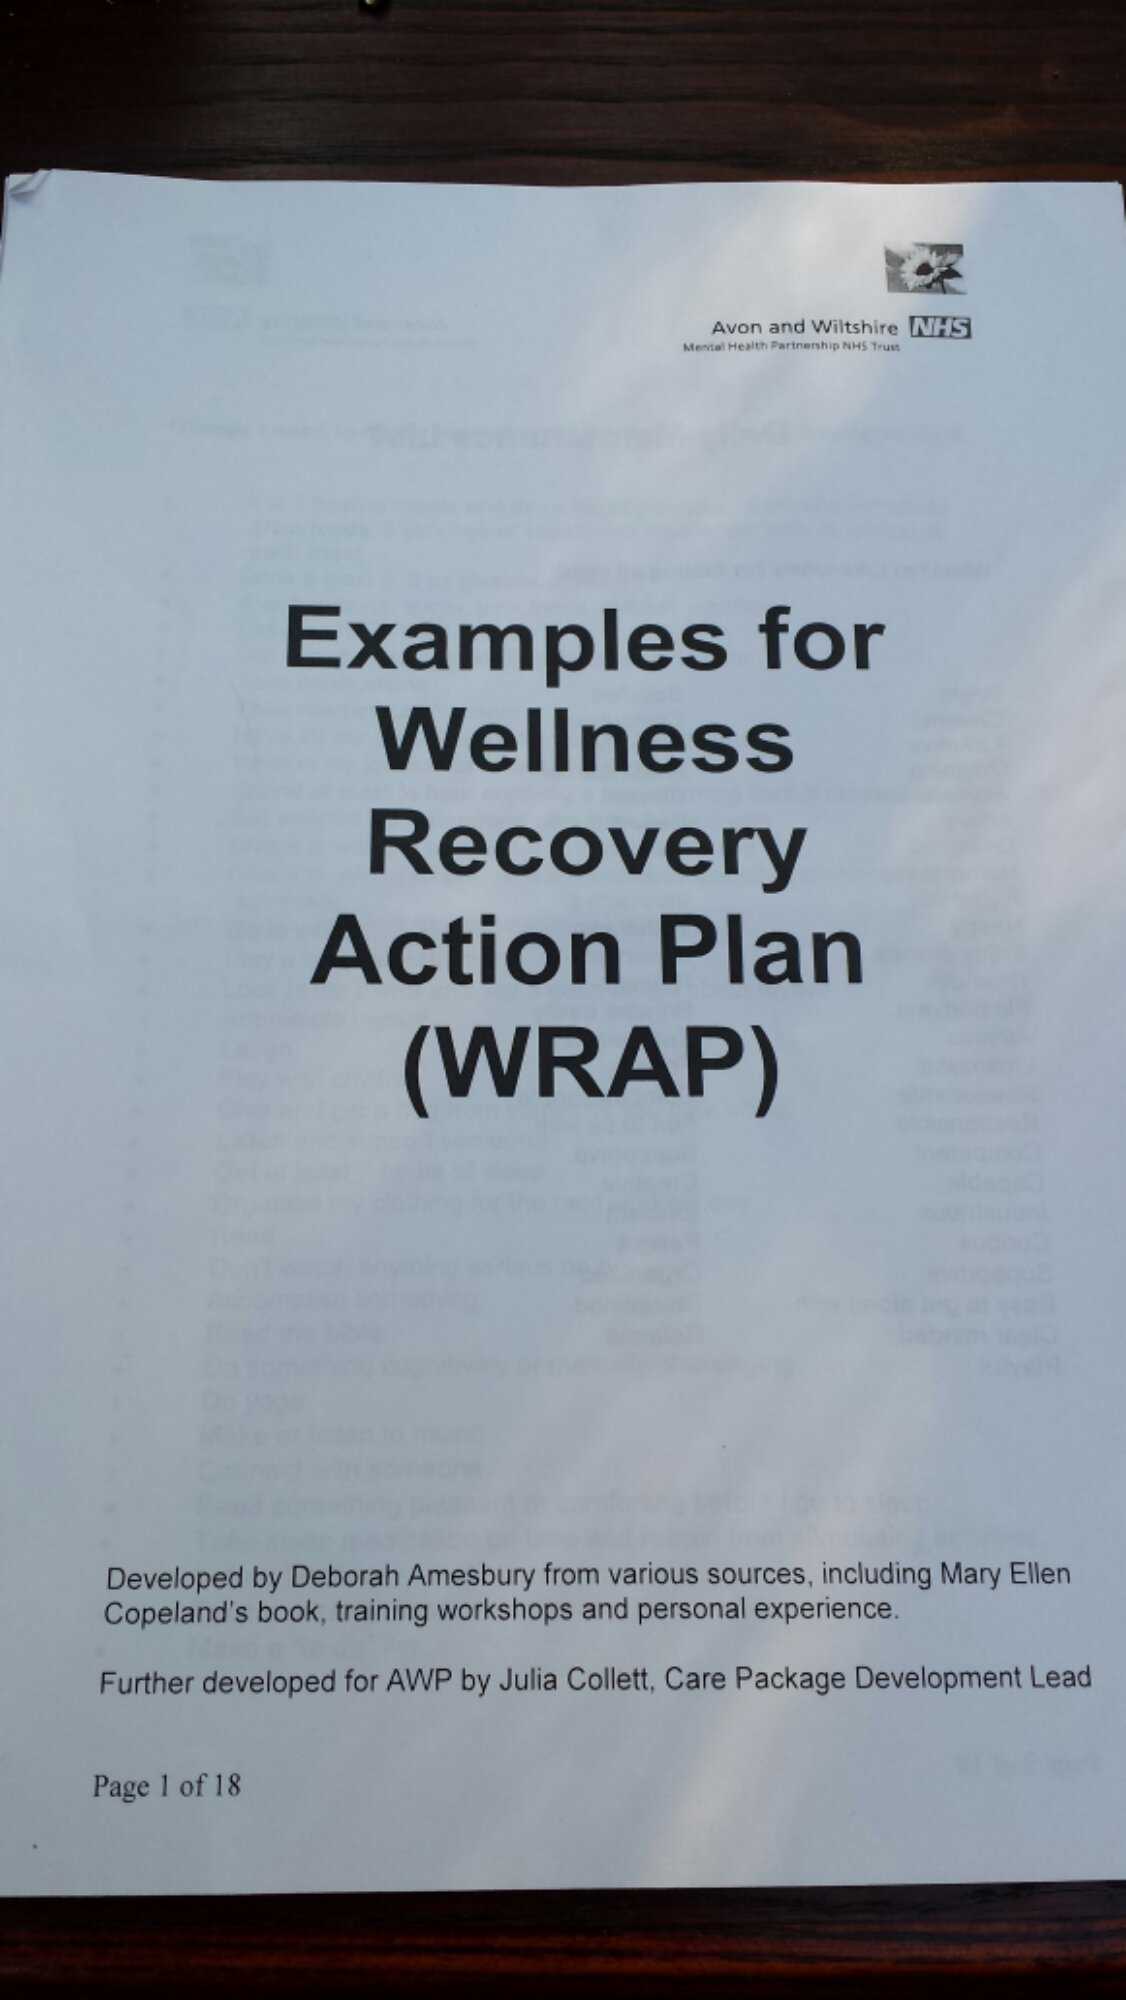 Sample WRAP (Wellness Recovery Action Plan) | Life after BPD